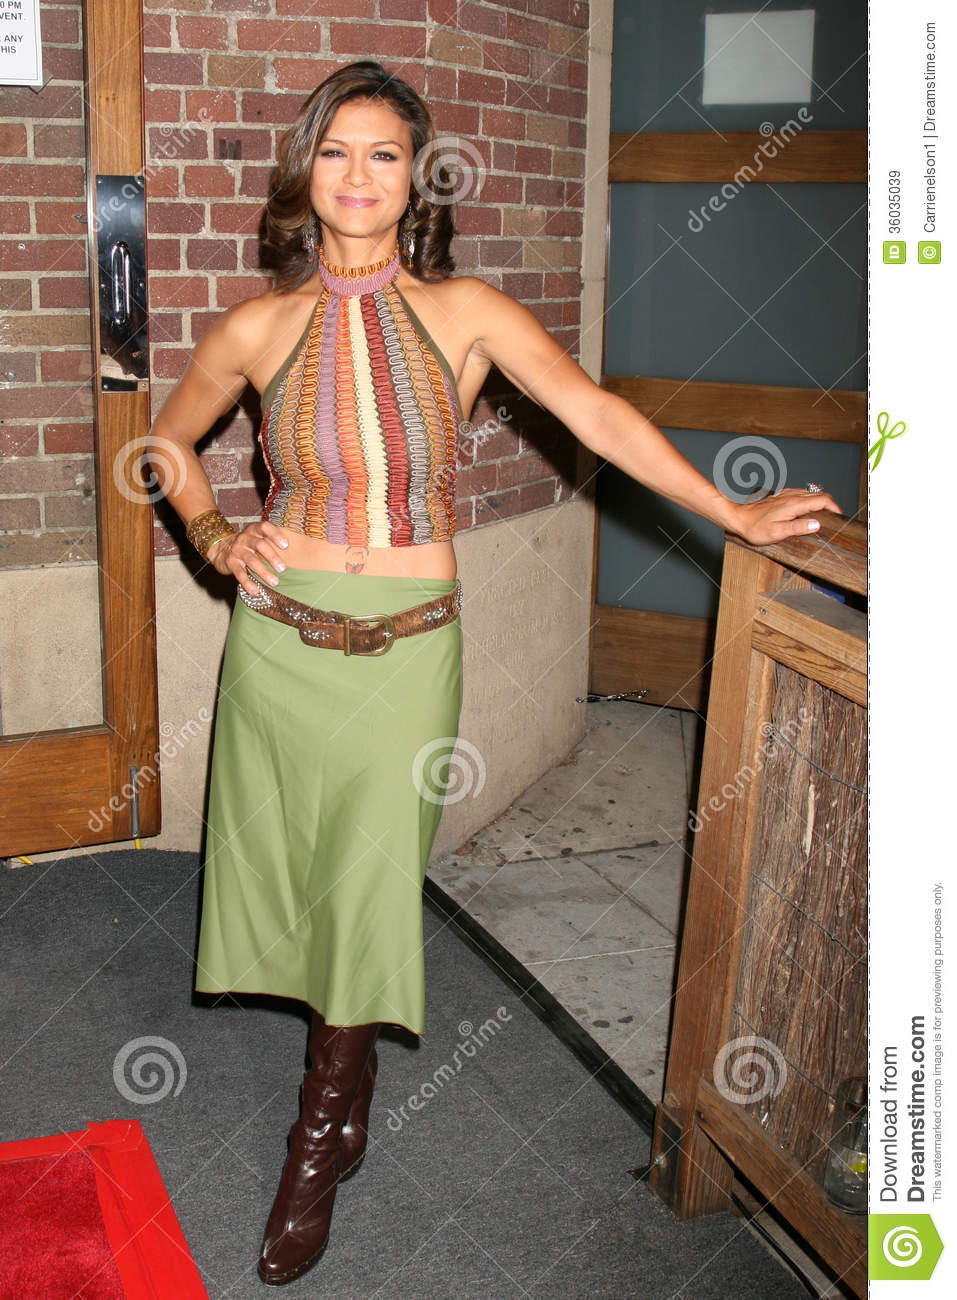 nia peeples 2015nia peeples facebook, nia peeples inside out, nia peeples street of dreams, nia peeples 2016, nia peeples, nia peeples martial arts, nia peeples instagram, nia peeples wiki, nia peeples 2015, nia peeples party machine, nia peeples net worth, nia peeples biography, nia peeples hot, nia peeples imdb, nia peeples fame, nia peeples measurements, nia peeples movies and tv shows